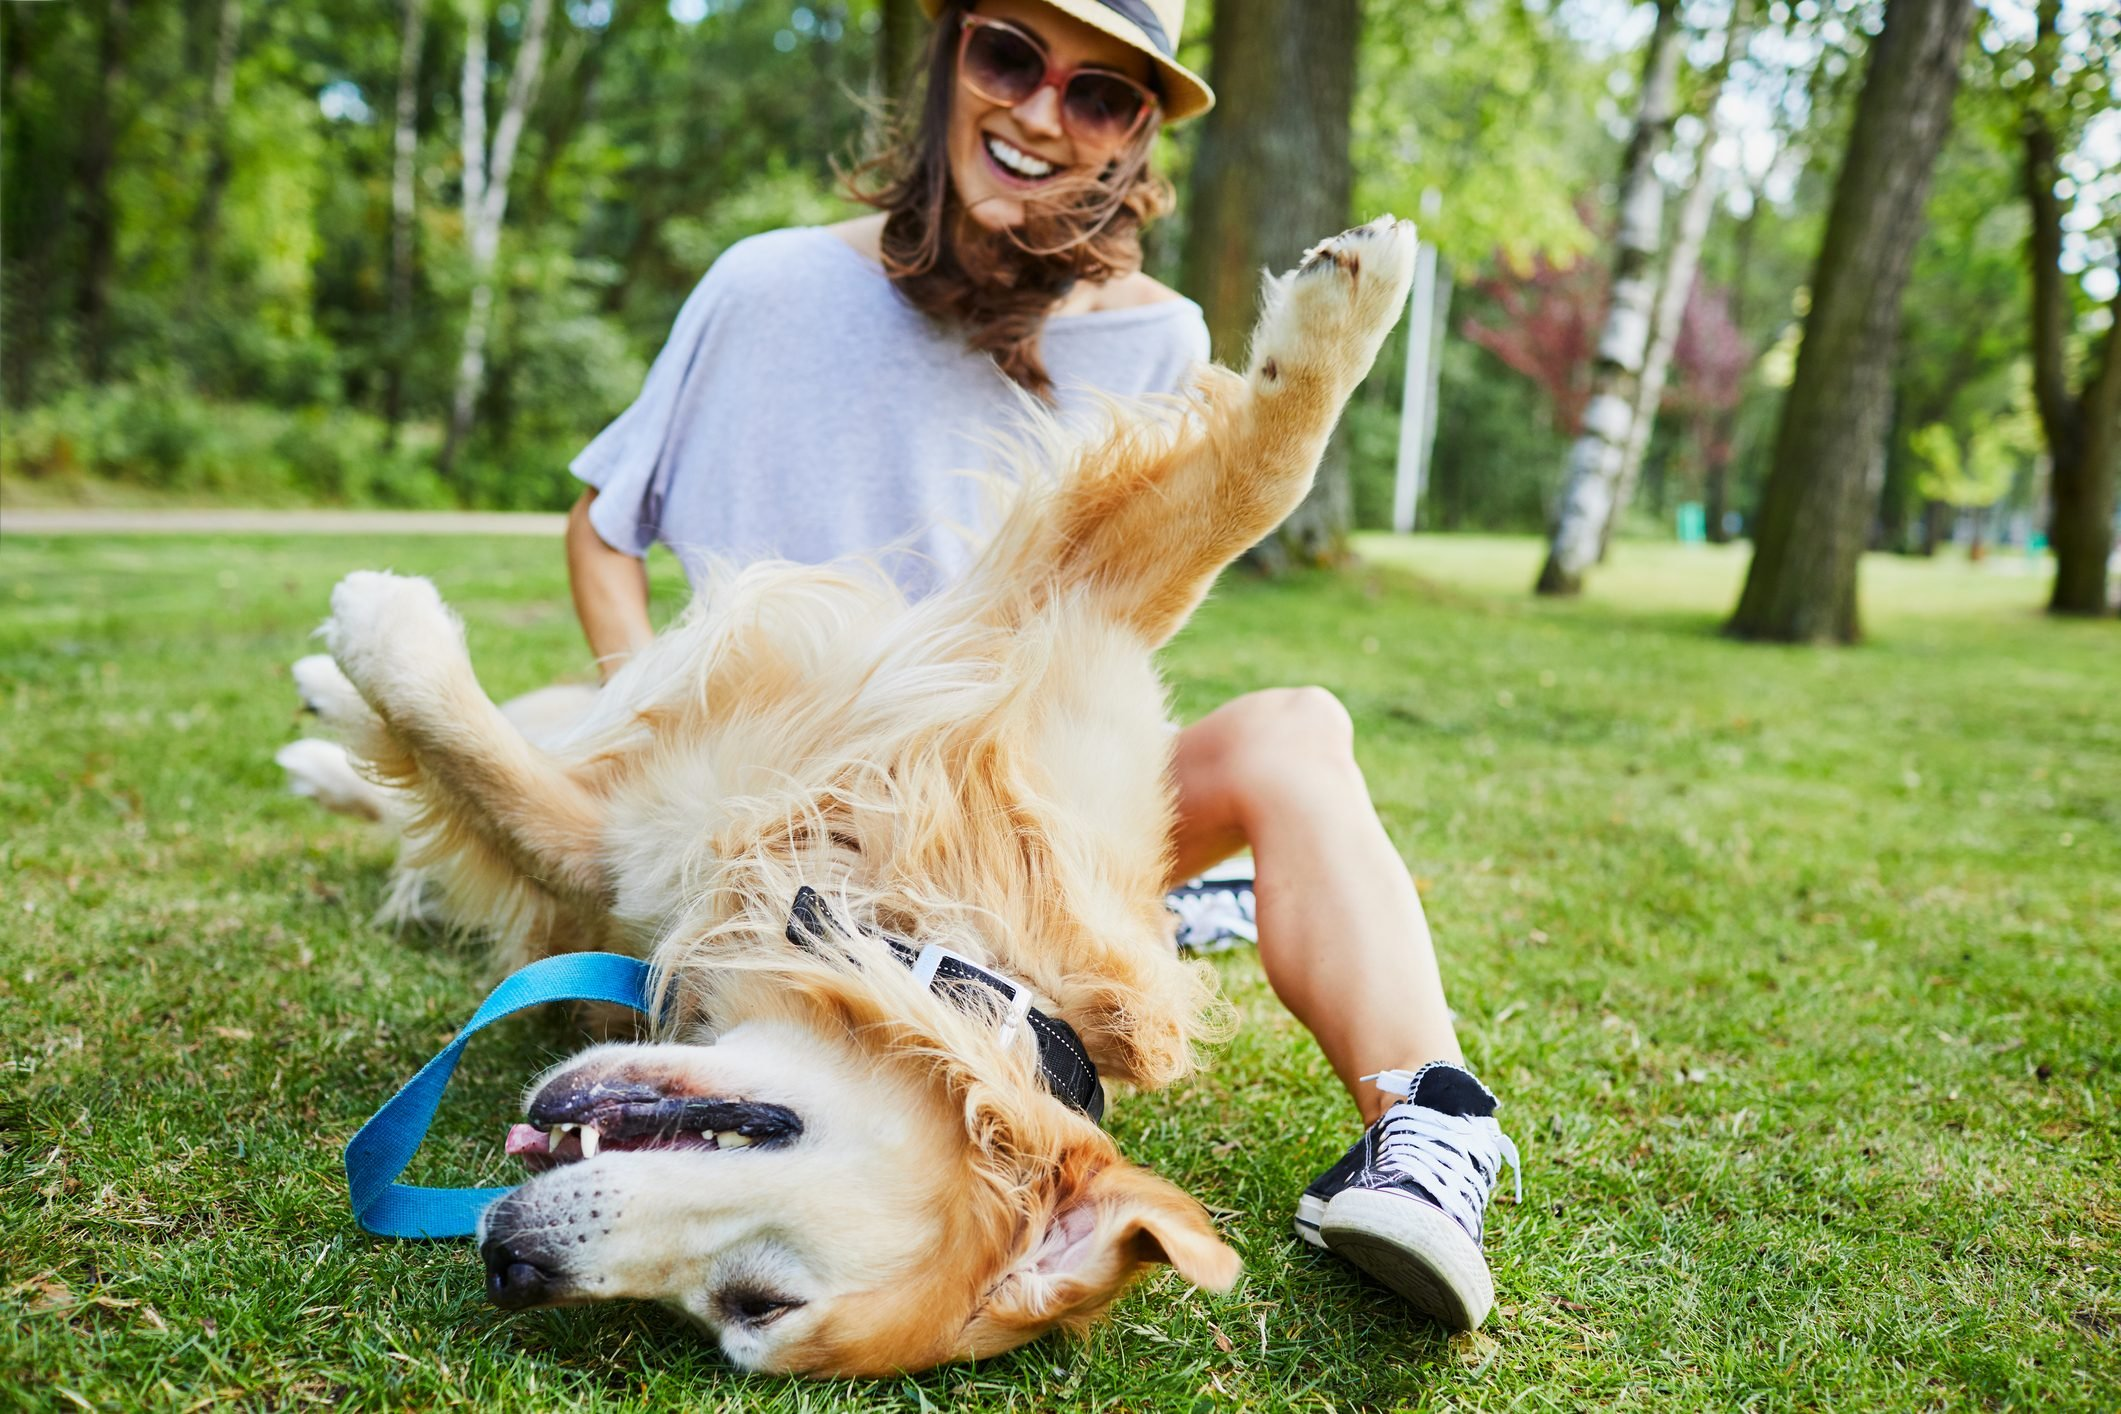 Joyful young woman playing with her dog outdoors in the park